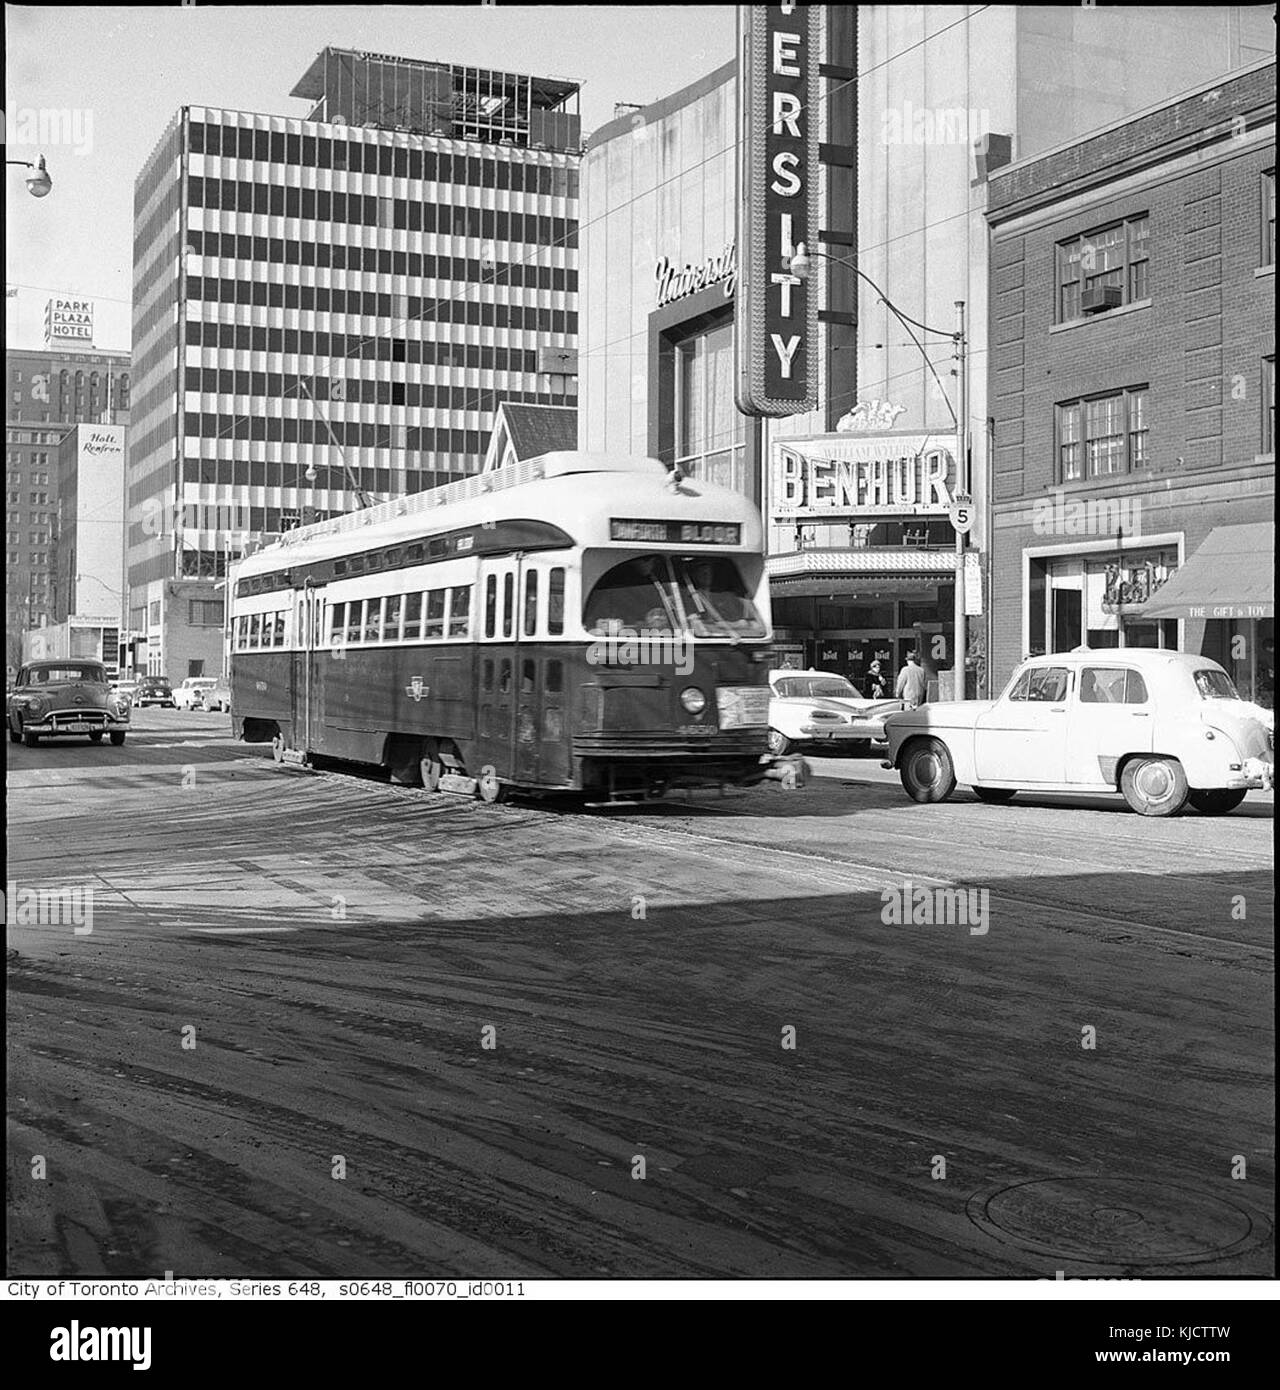 PCC streetcar on Bloor Street West - Stock Image